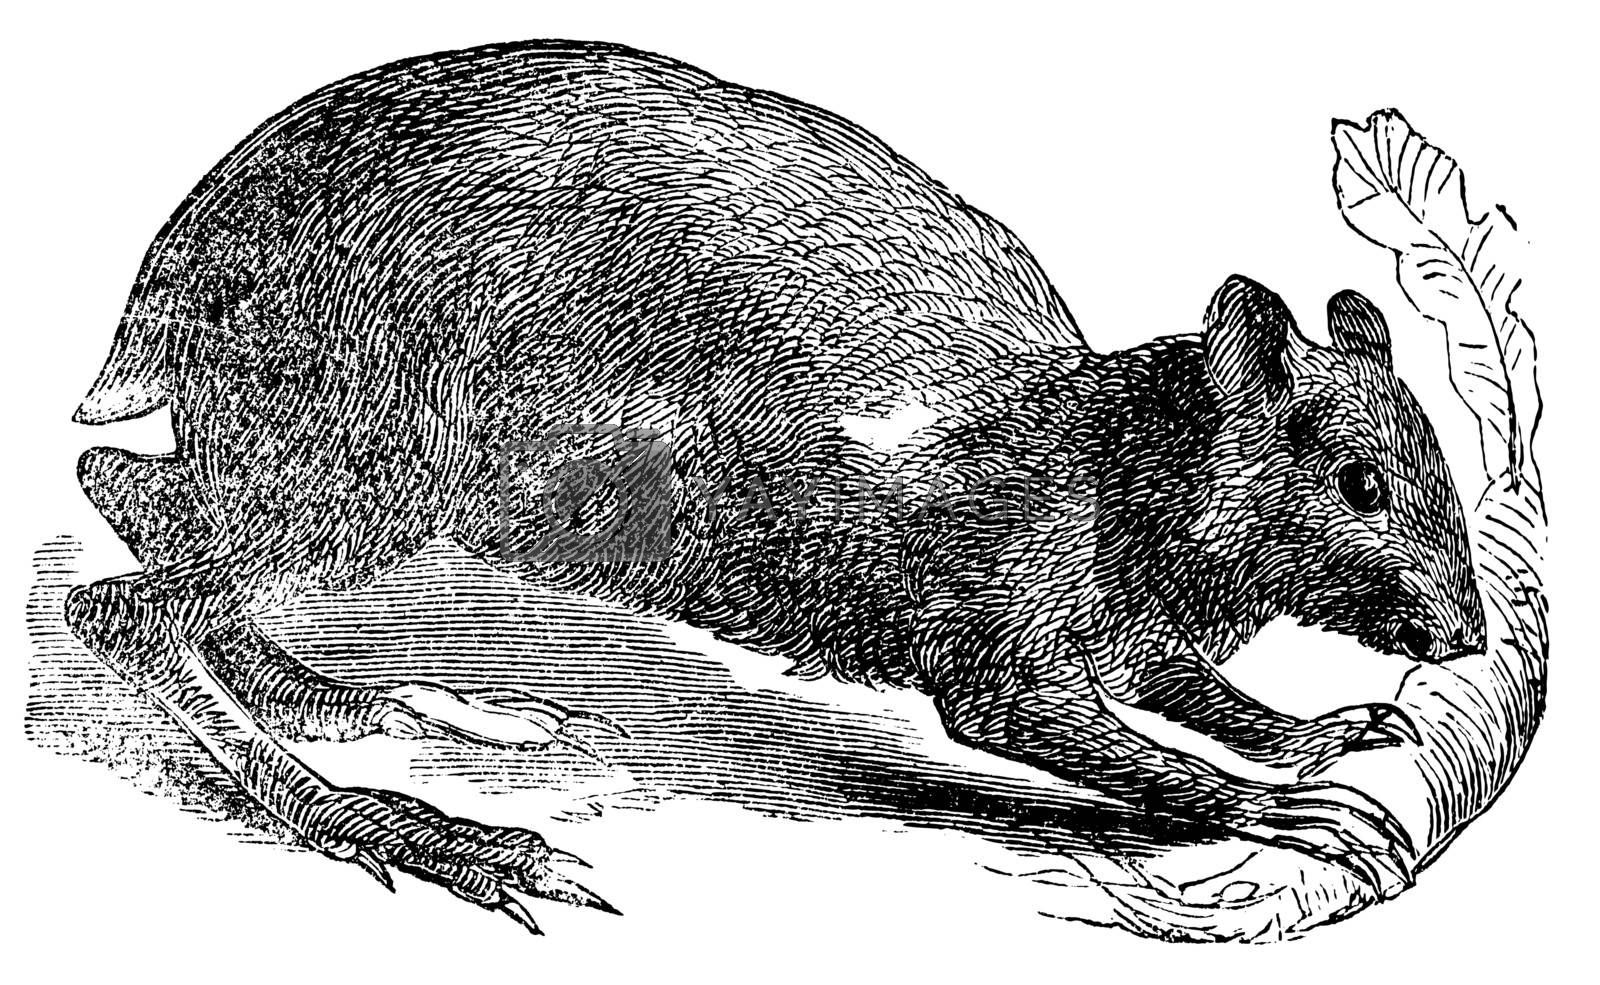 Agouti or Dasyprocta agouti engraving. Old engraved illustration of an agouti rodent eating a leaf. They are related to guinea pigs and look quite similar but have longer legs.